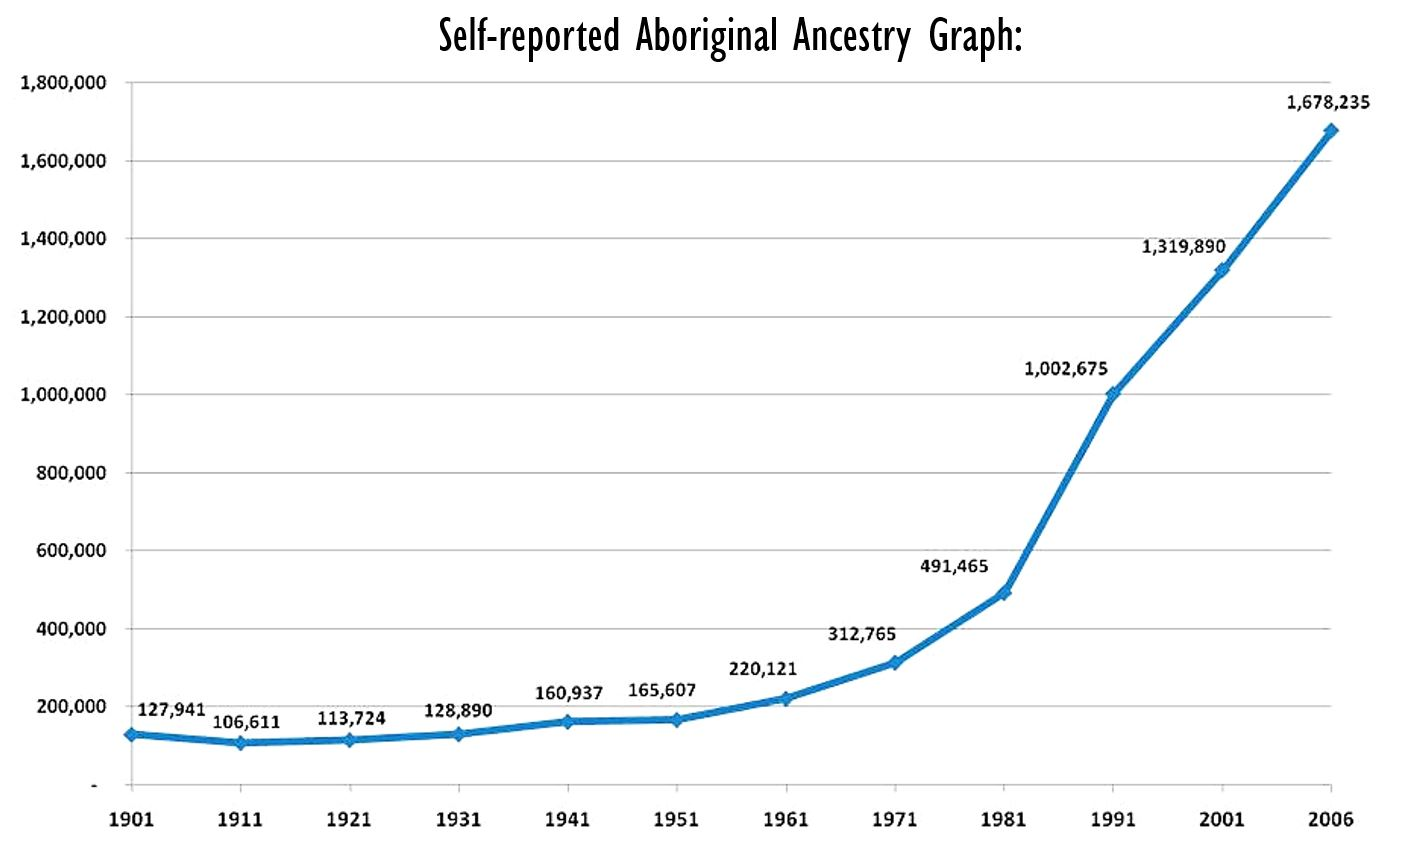 Self-reported Aboriginal Ancestry Graph. Indigenous and Northern Affairs Canada (2011); Line graph showing a geometric progression of self-identified indigenous persons reaching 1,678,235 in 2006;